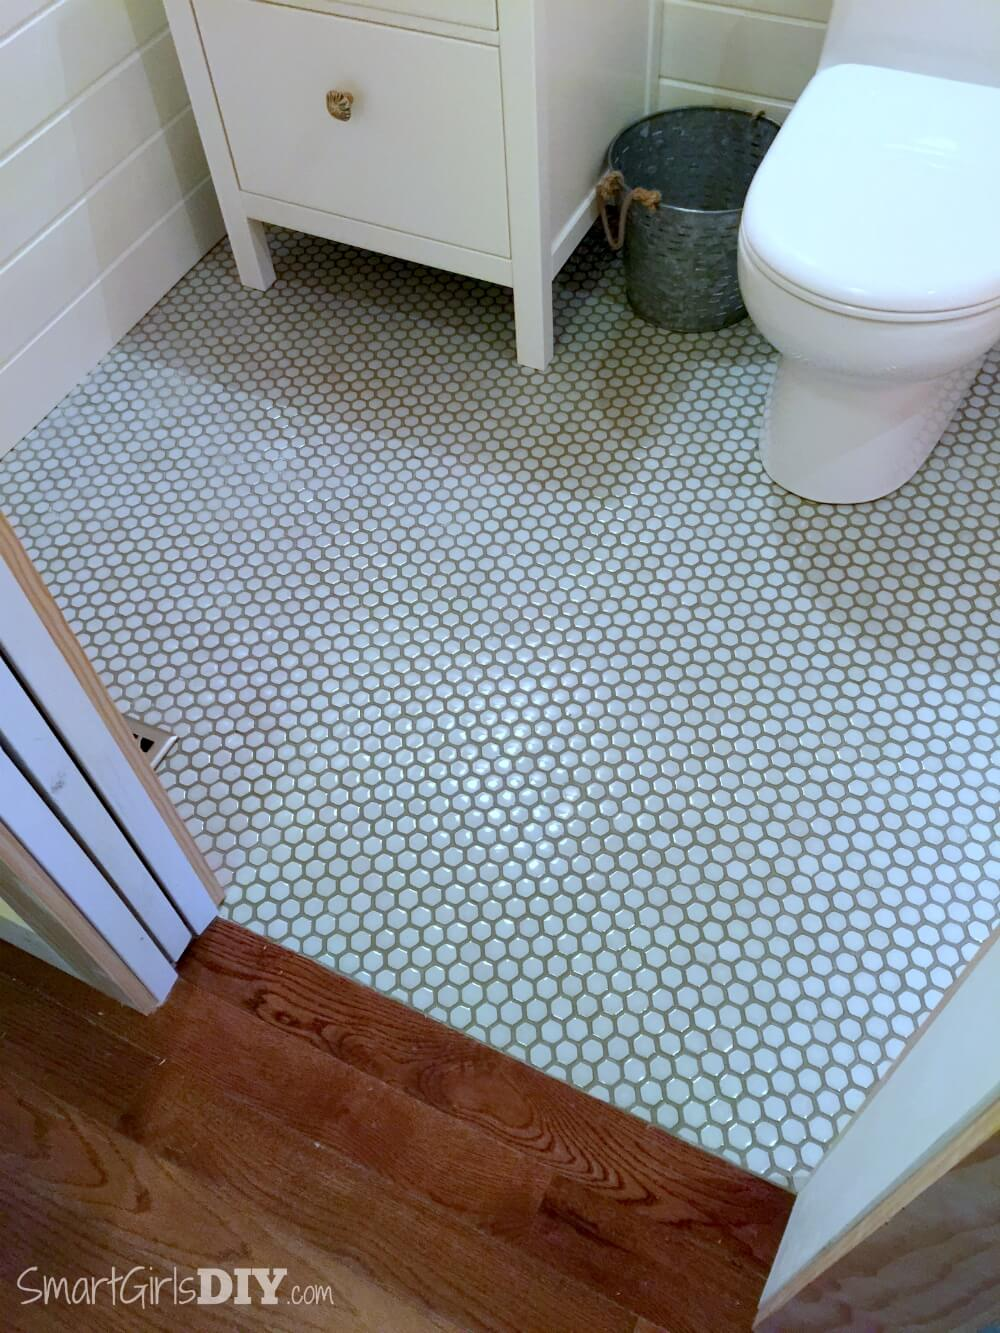 Guest bathroom 7 diy hex tile floor bathroom makeover hexagon floor tiles with painted grout lines transition to hardwood floor solutioingenieria Images